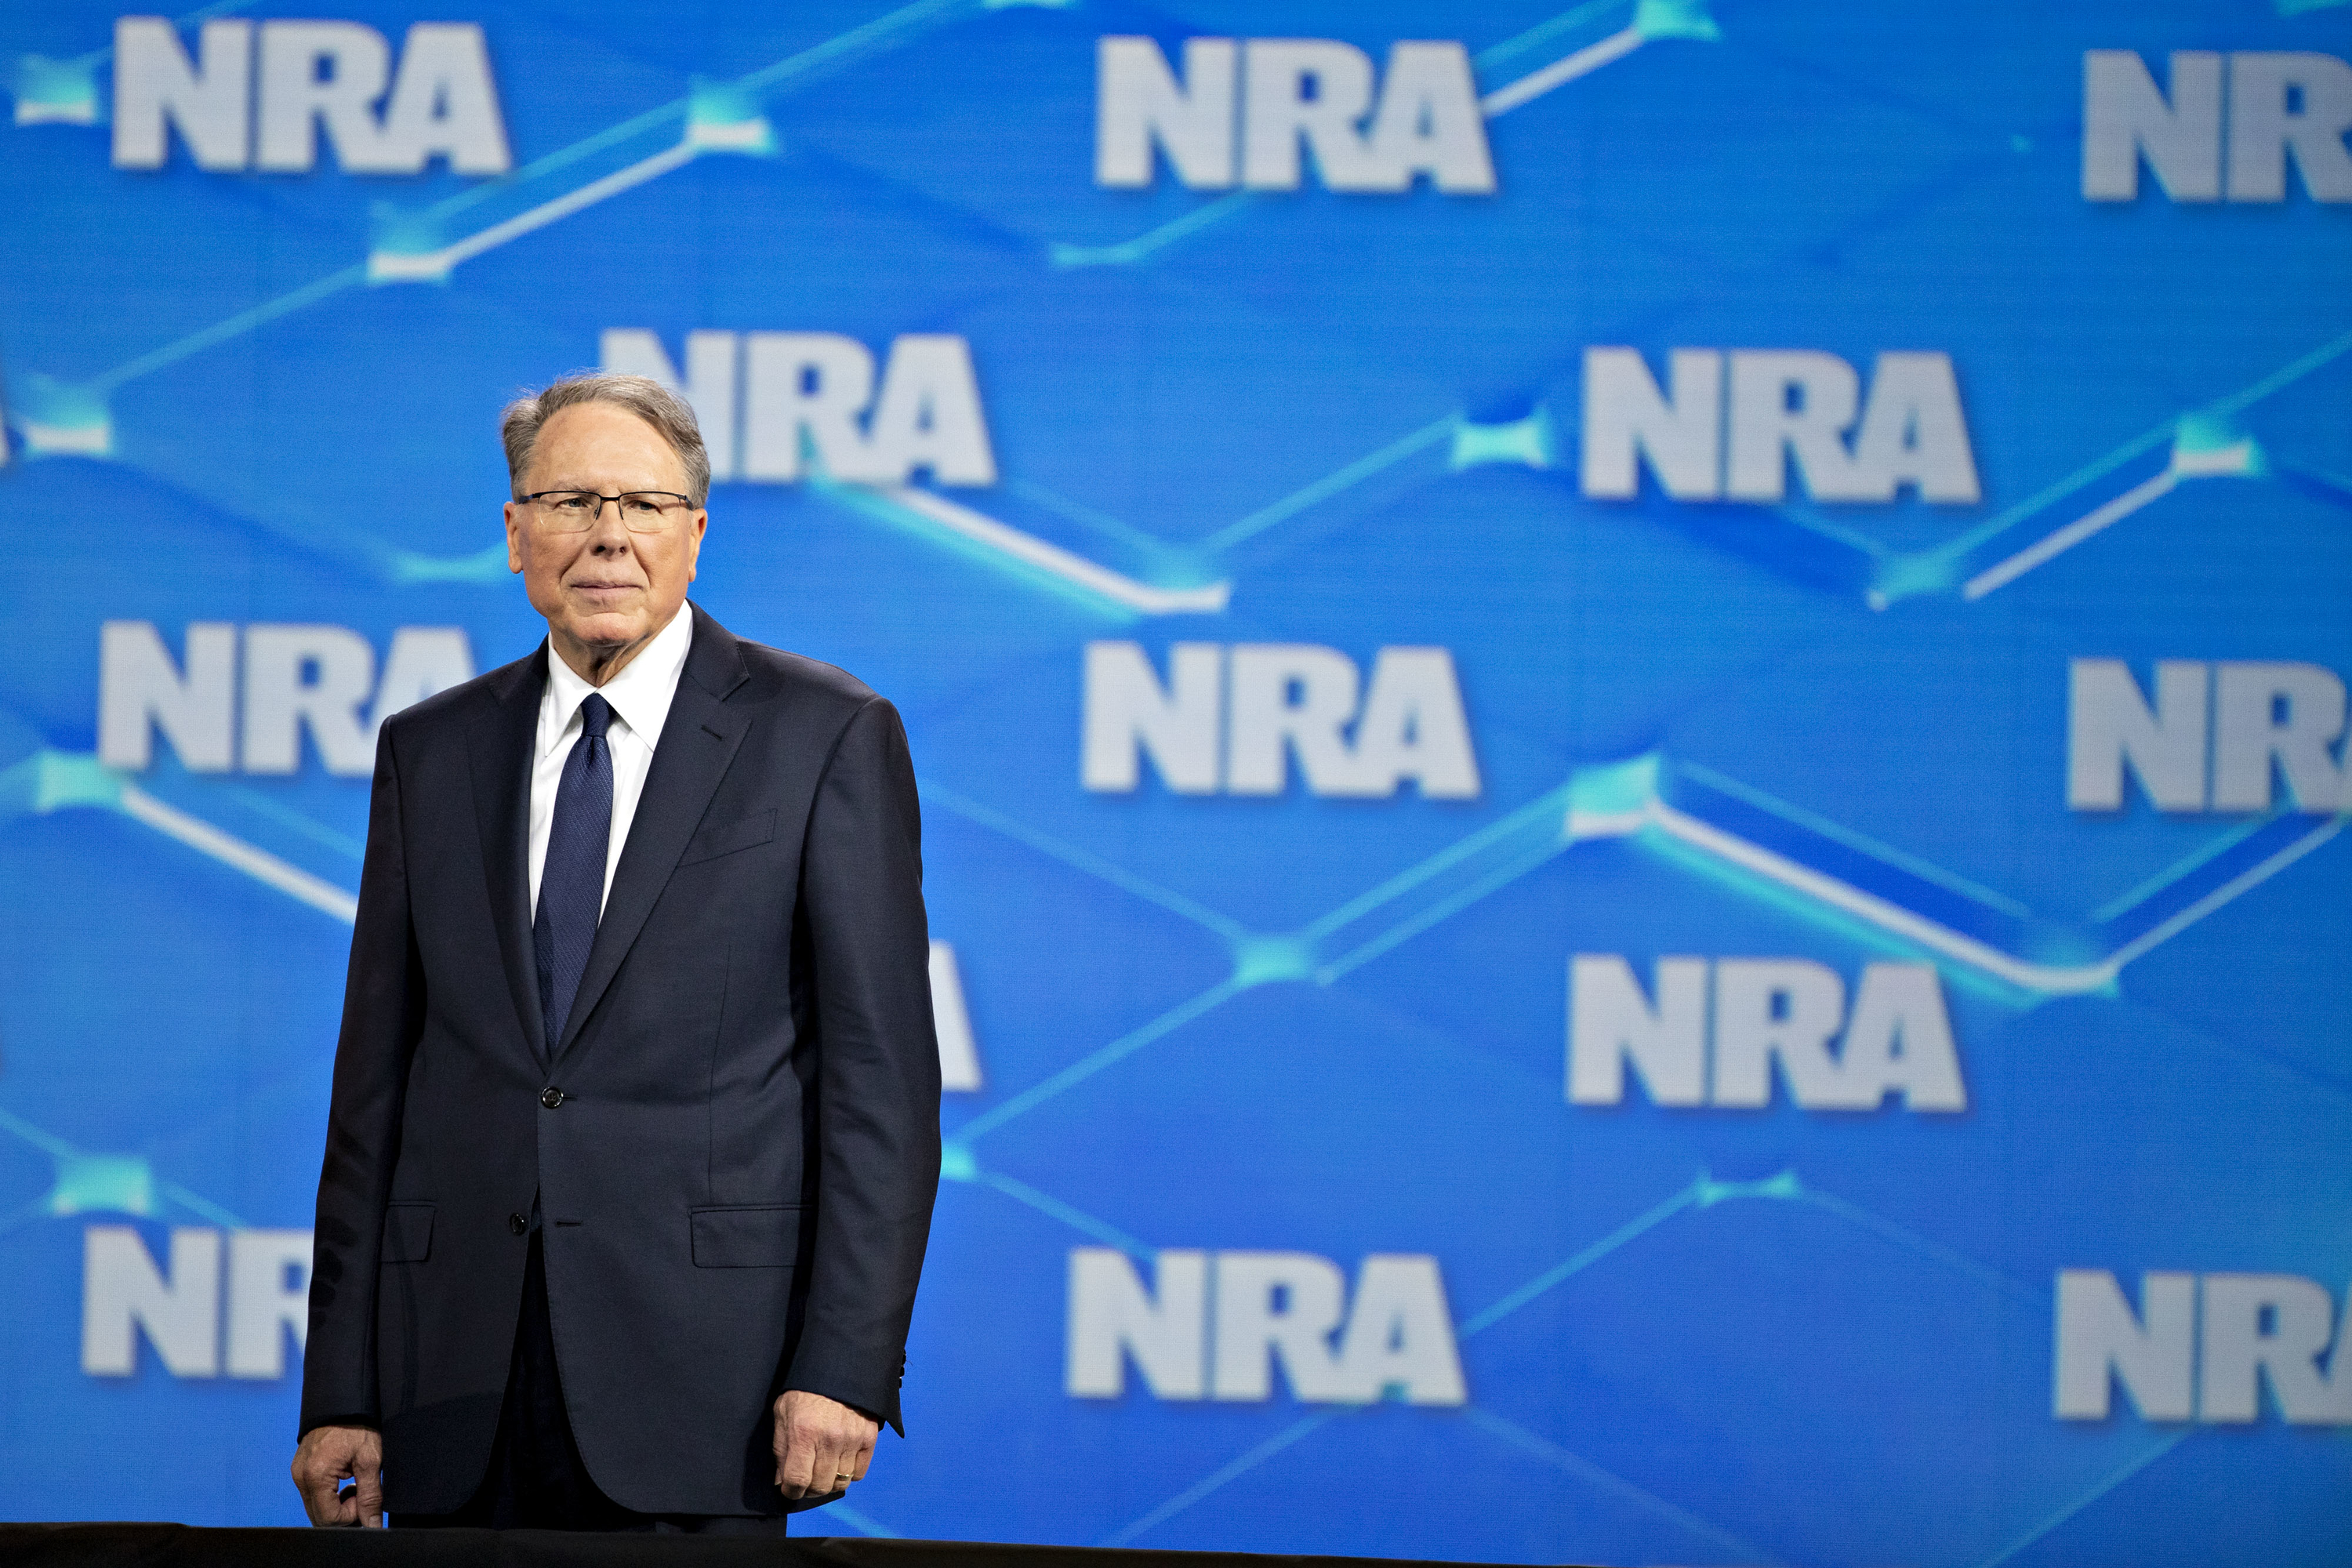 The NRA and its longtime agency, Ackerman McQueen, are suing each other: Wake-Up Call